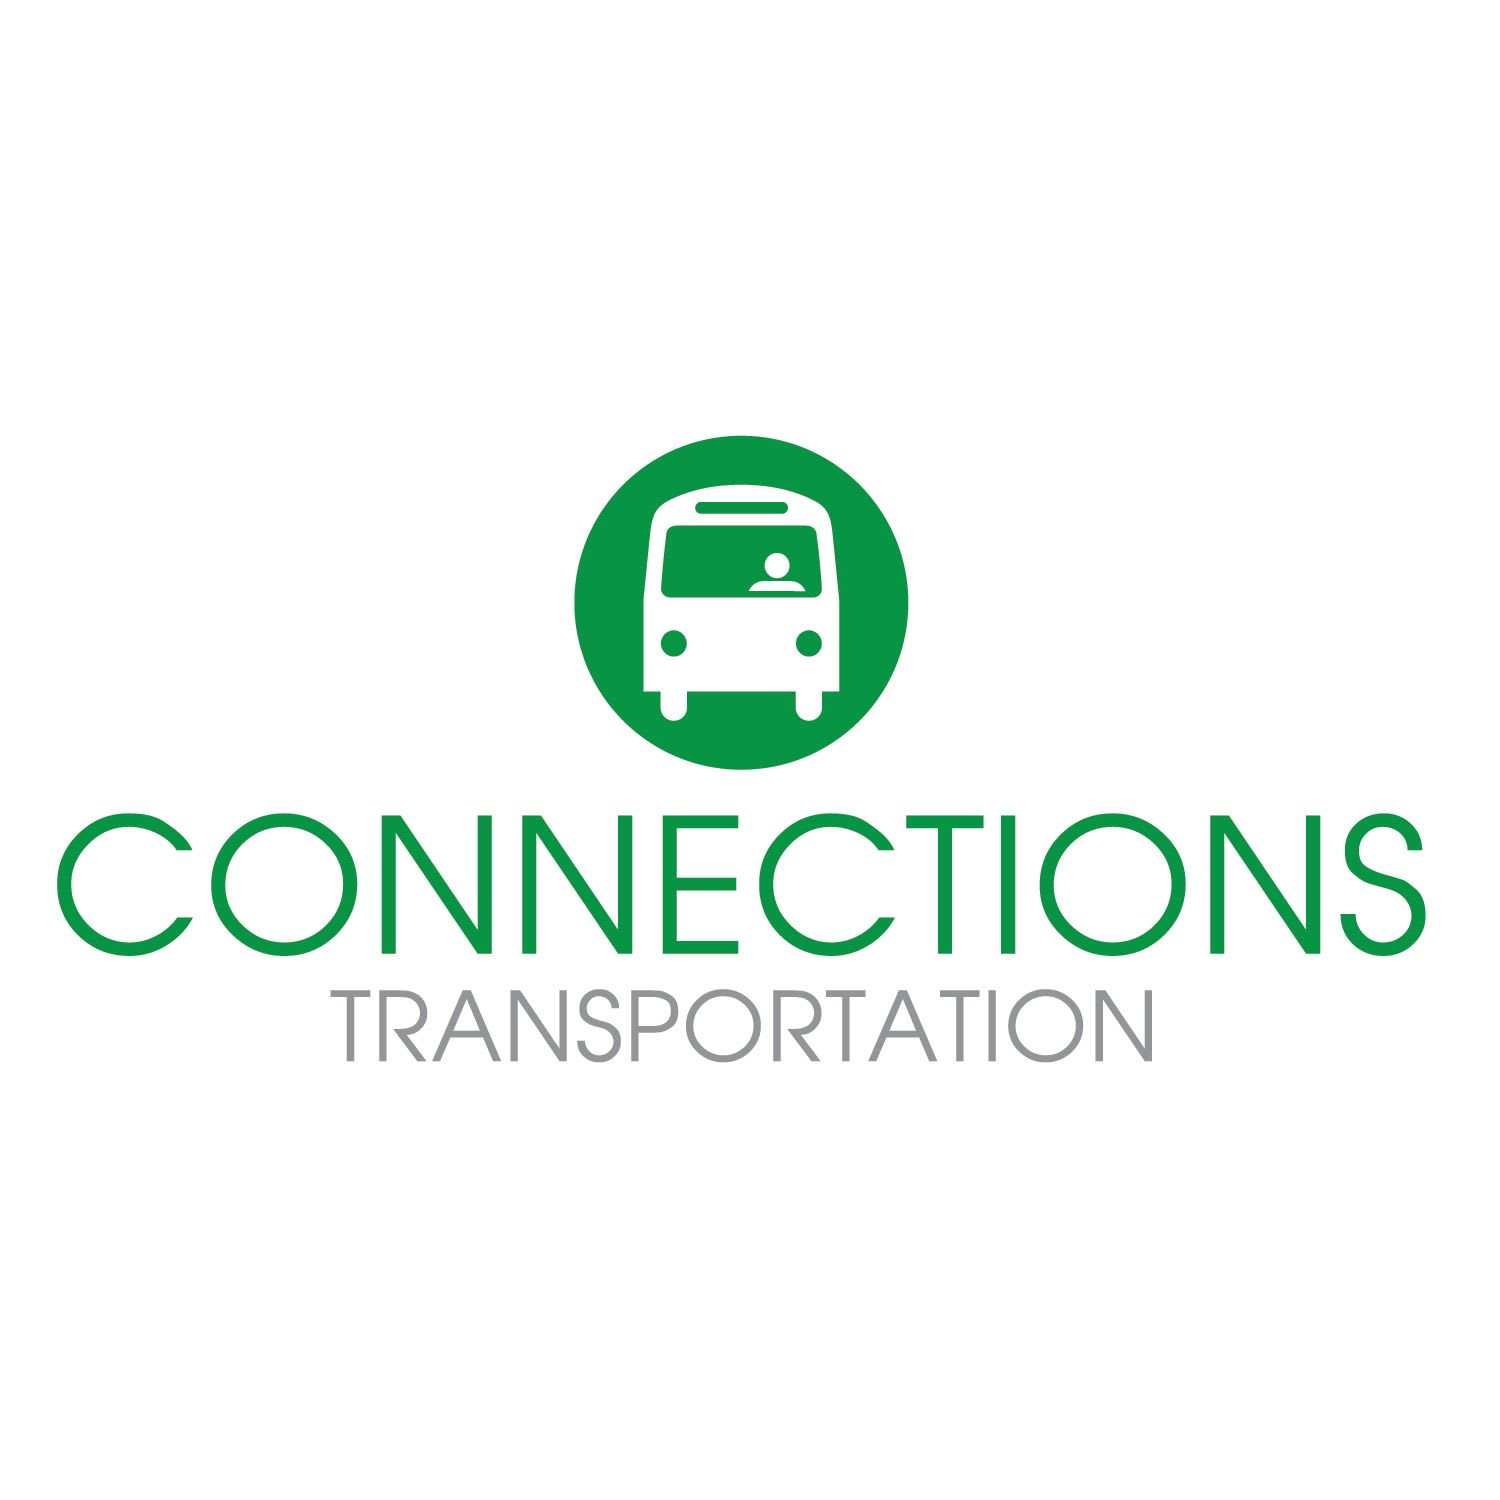 Link to Connections Transportation, Maintenance and Security at Discovery Village At Sandhill in Columbia, South Carolina